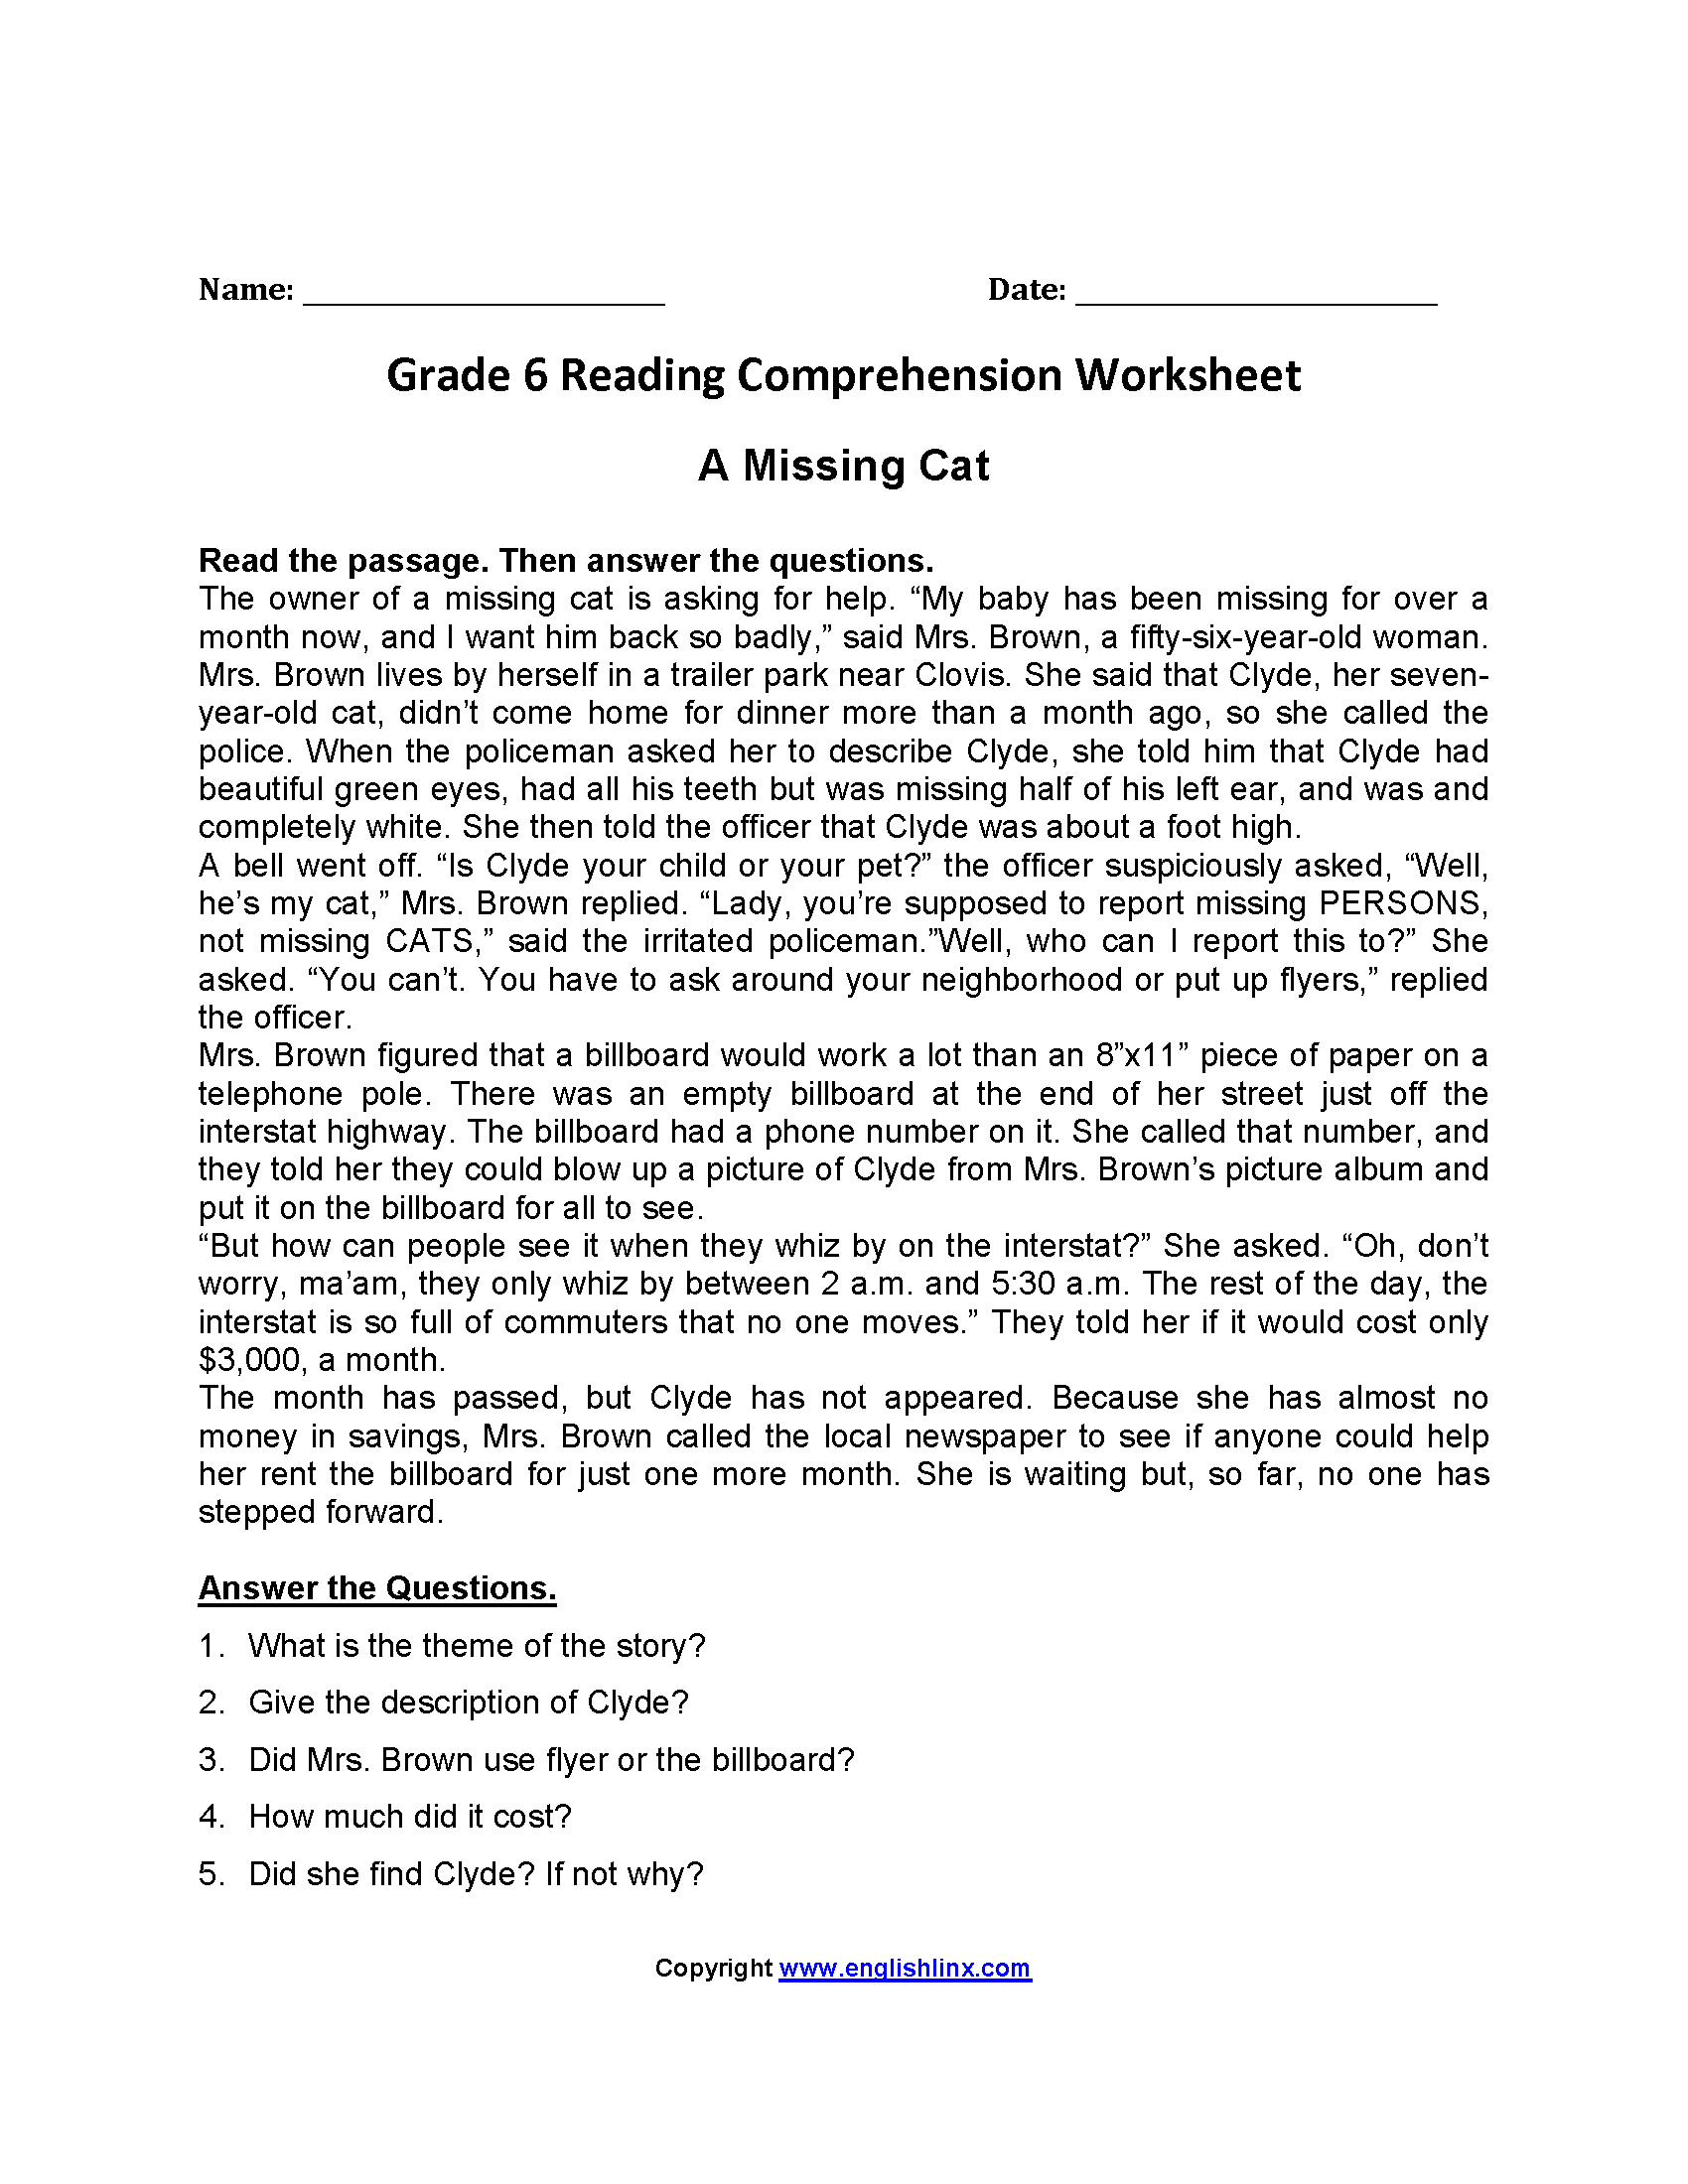 Worksheet Reading Comprehension Worksheets 6th Grade Grass Fedjp Worksheet Study Site